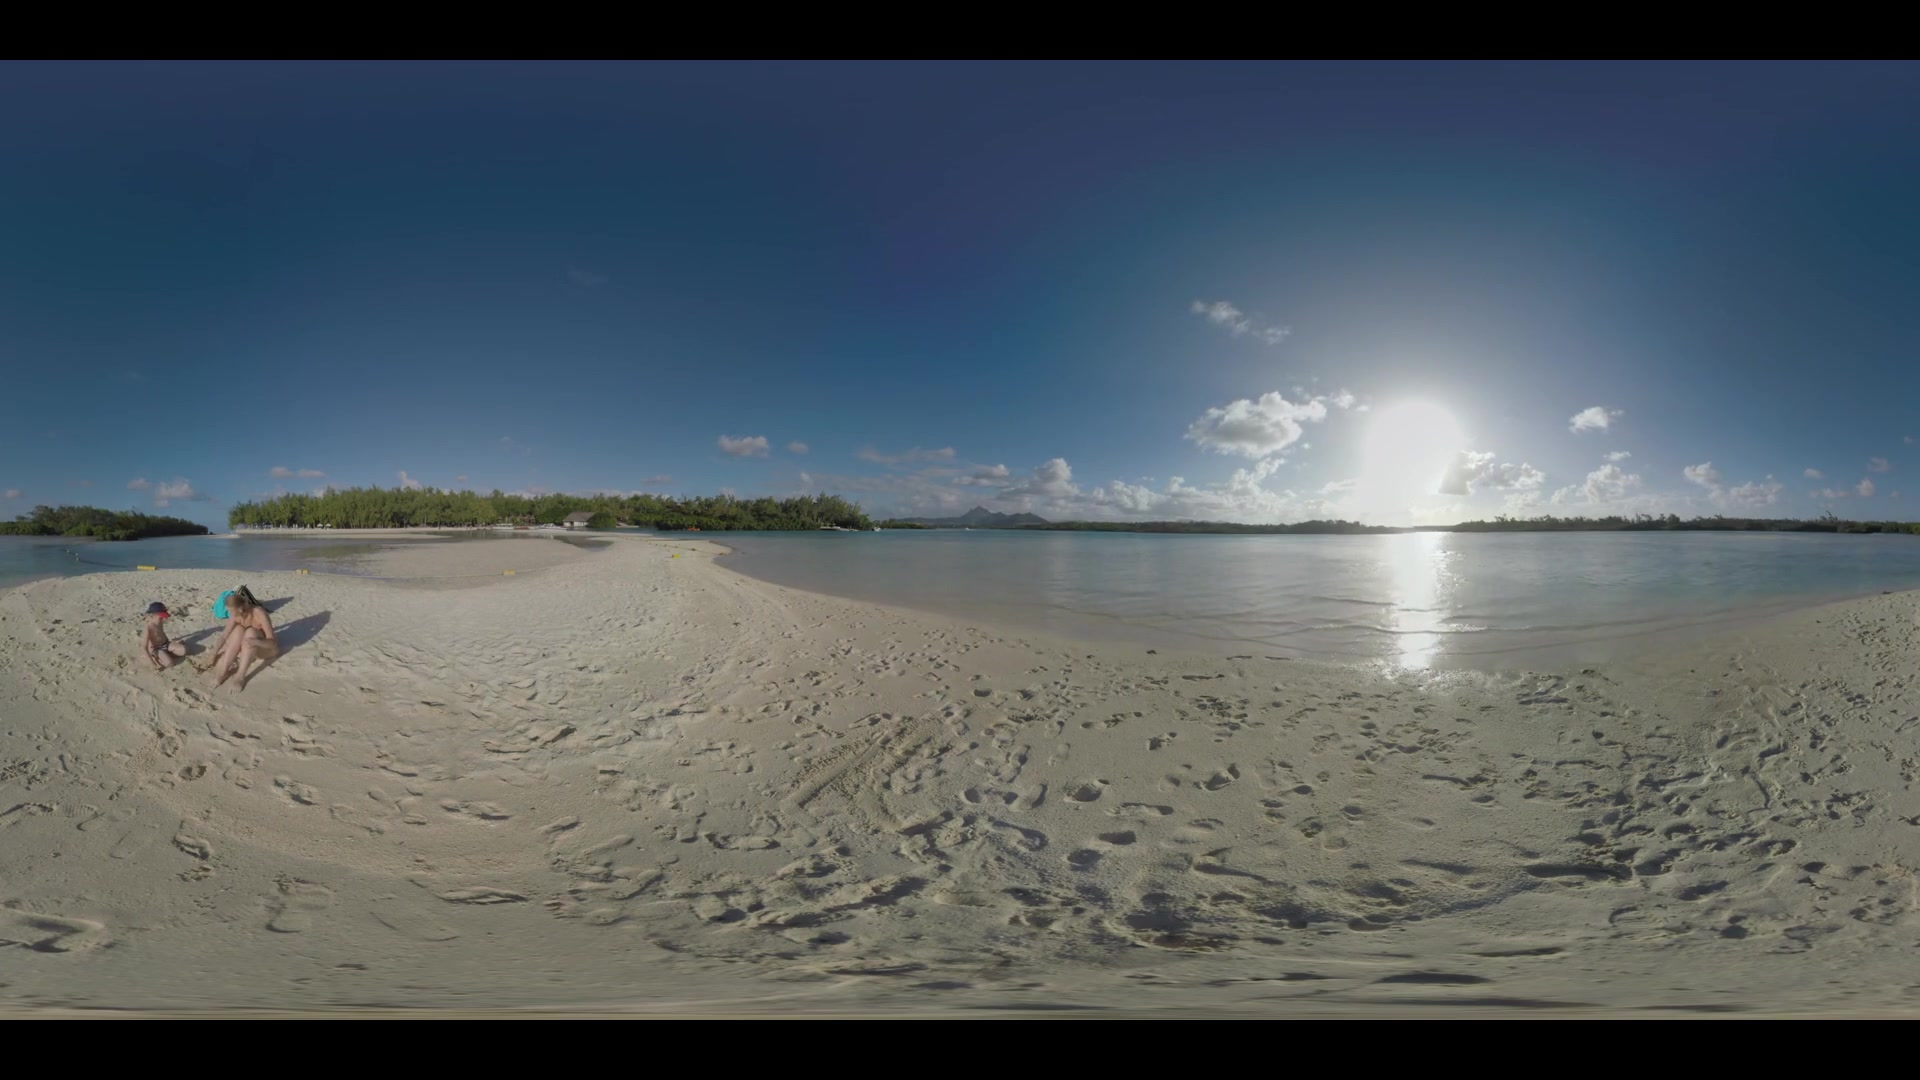 360 VR video. Parents and son having a nice day on the beach. Mom and child relaxing on the shore while dad swimming. Water shining in bright sunlight. Vacation on resorts of Mauritius